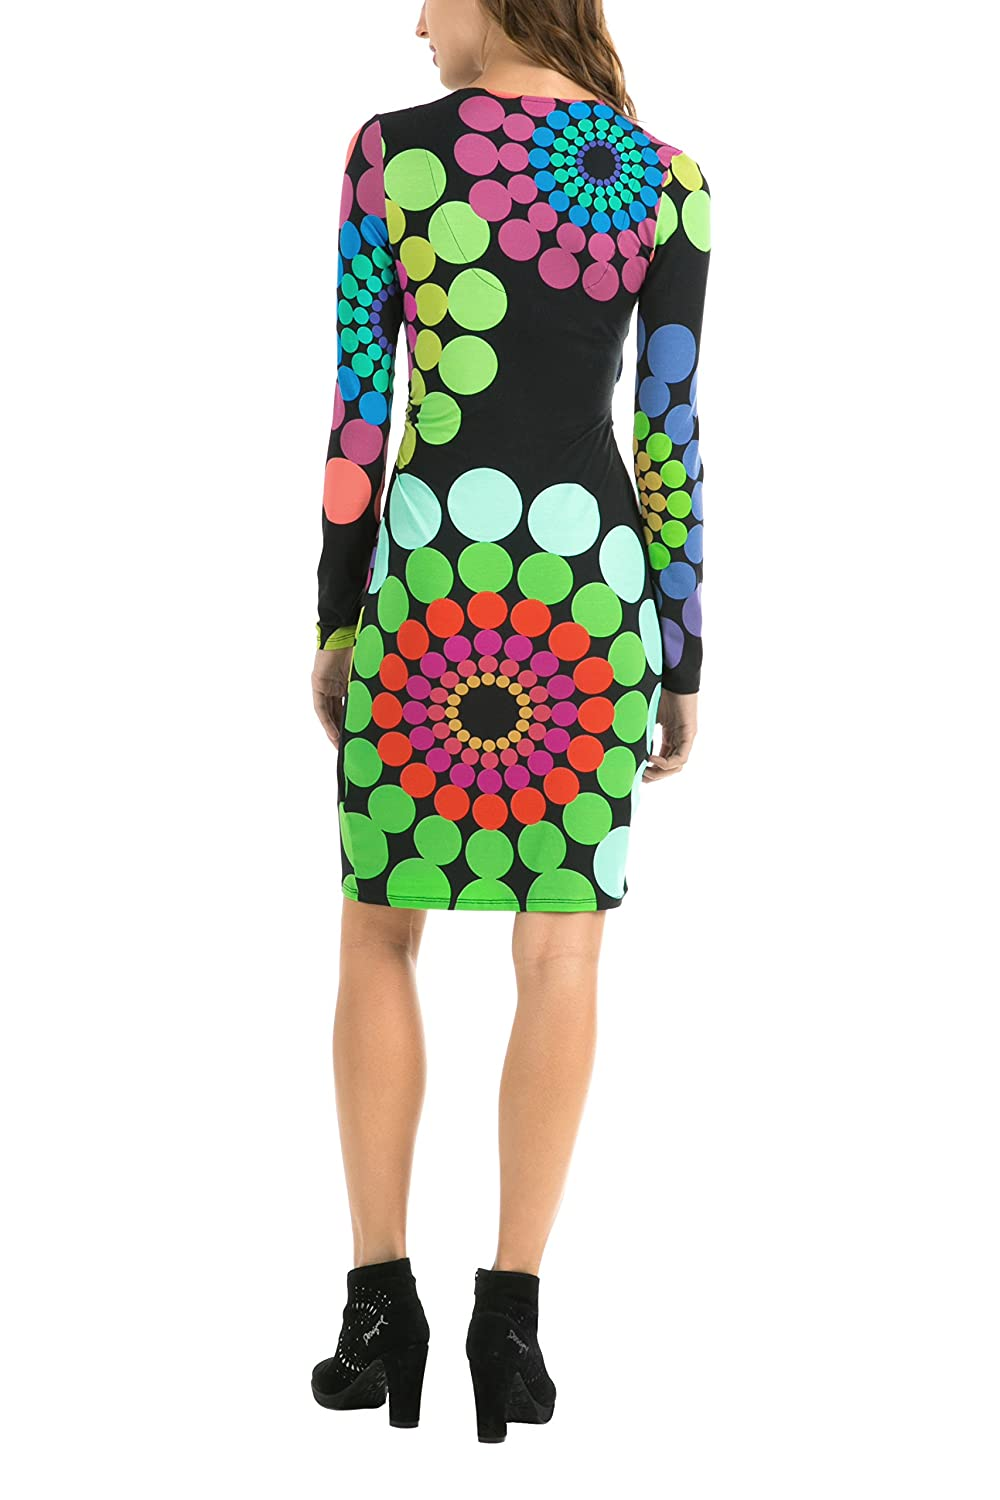 Manches Longues Femme Imprimé Desigual Charly Robe Patineuse dBrCoexW